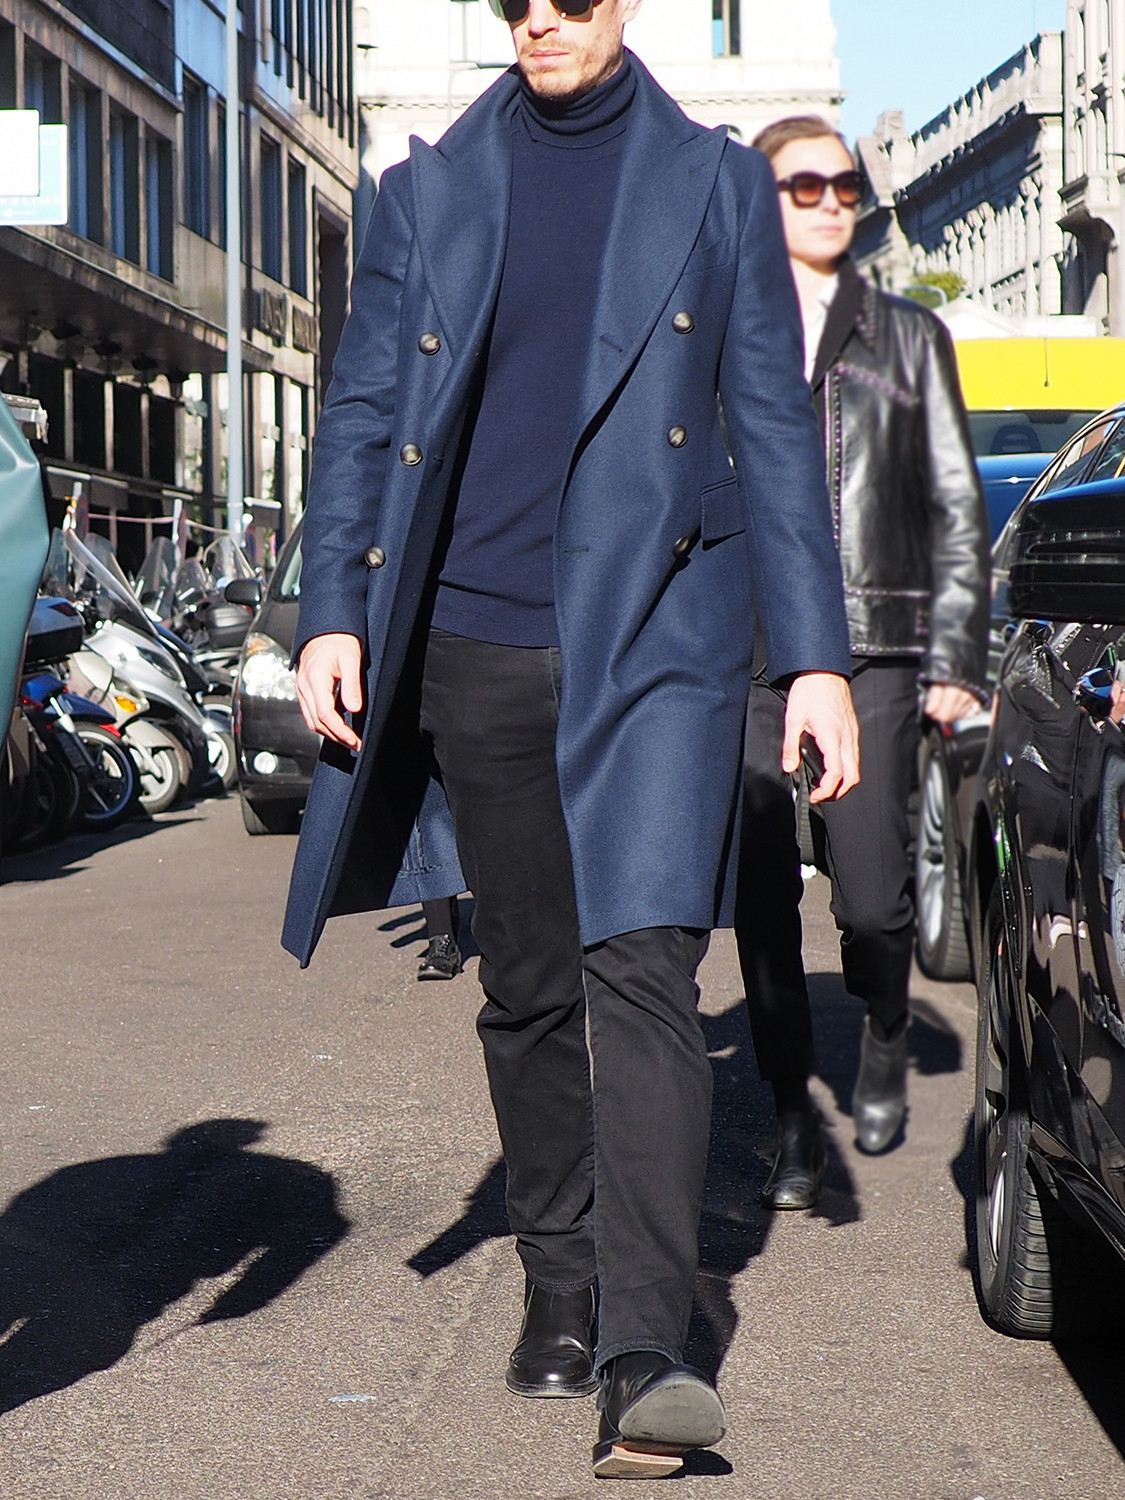 Men's outfit idea for 2021 with double-breasted overcoat, navy lightweight rollneck jumper, black jeans, black chelsea boots. Suitable for autumn and winter.